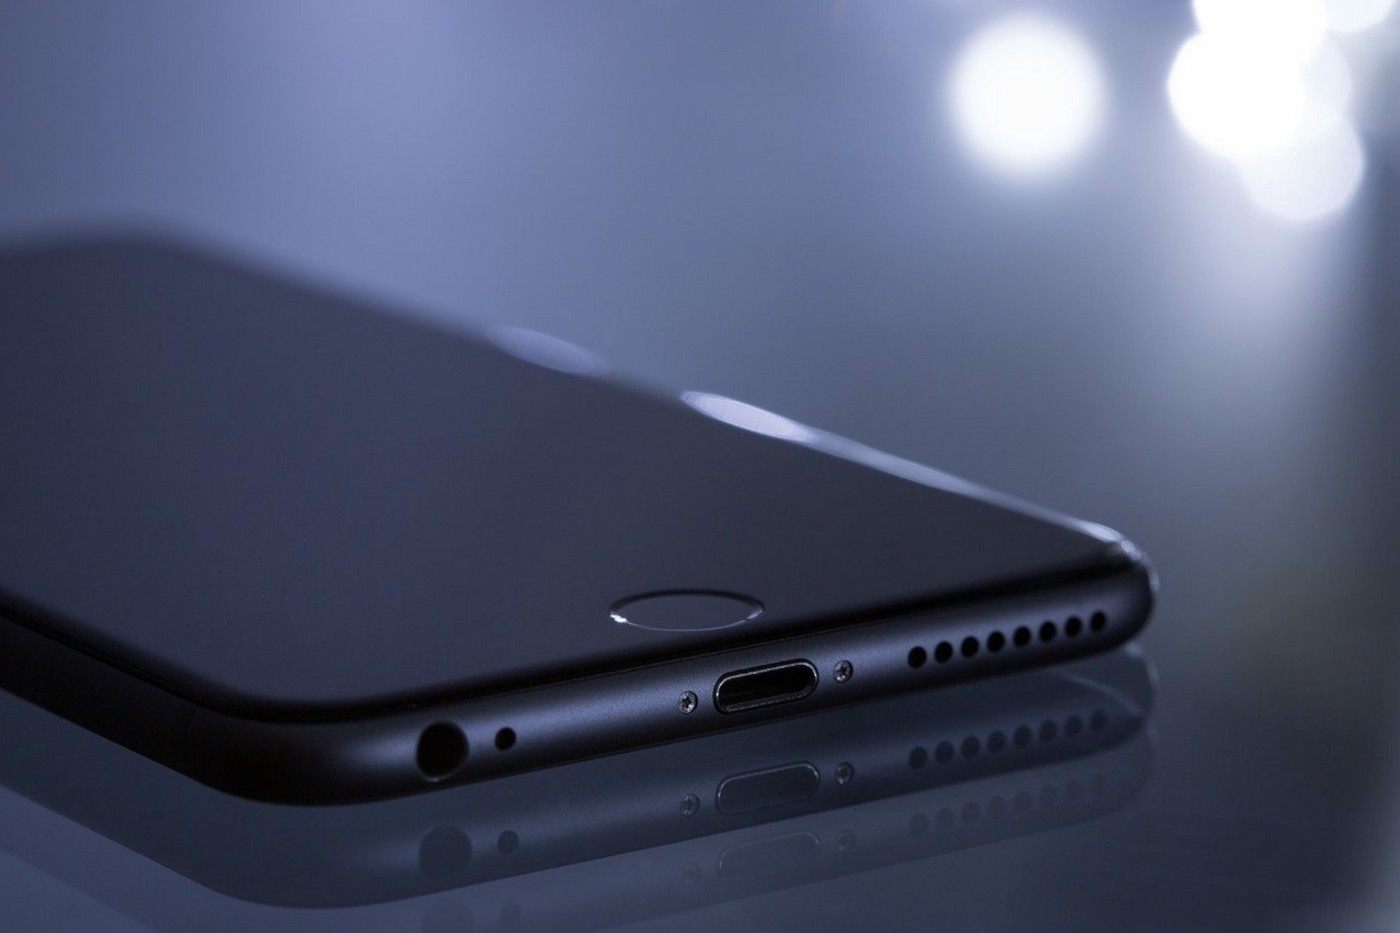 Color photo of a black mobile phone, face down on a surface. Bright lights in the background of otherwise darkness.